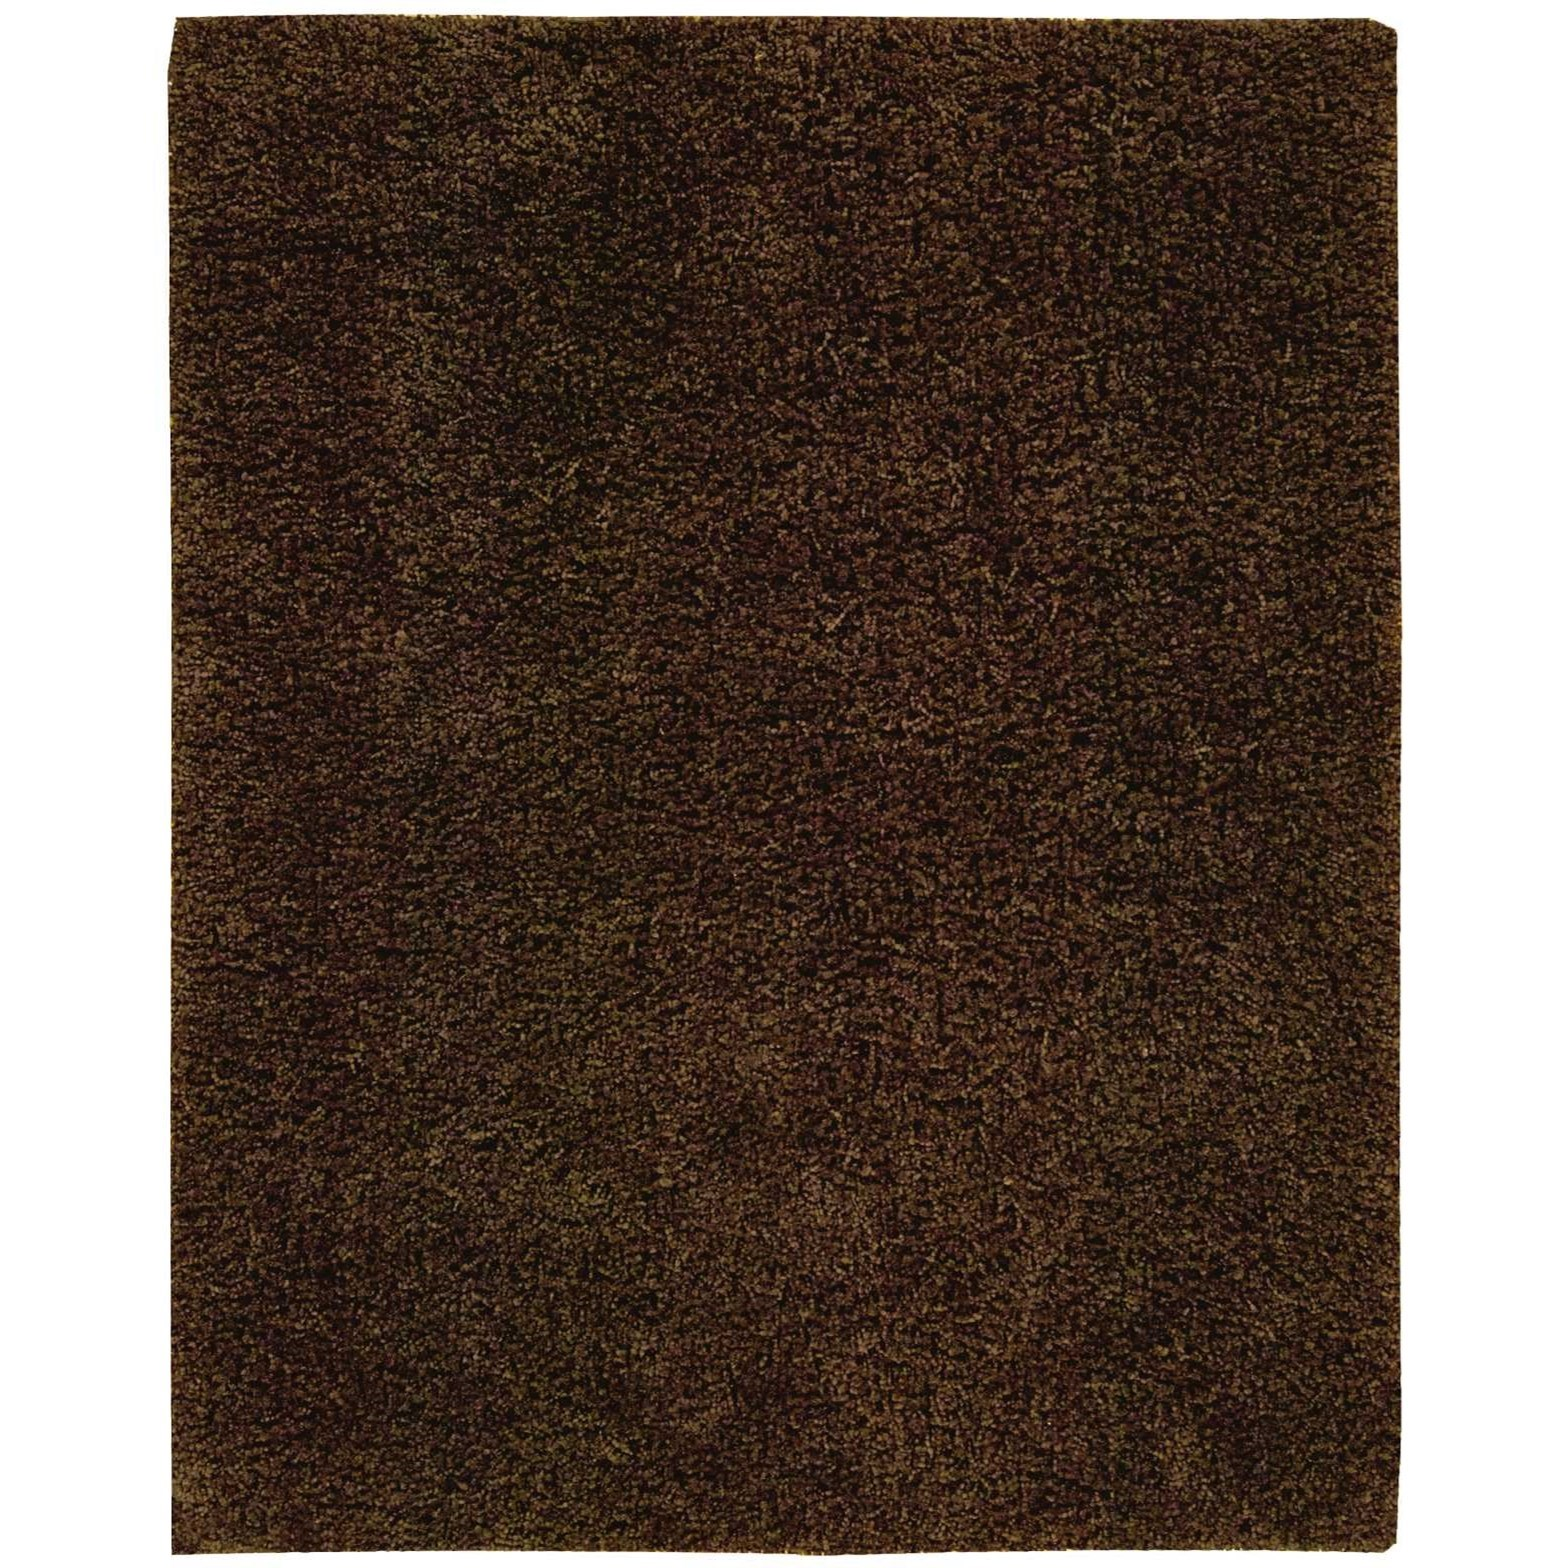 """Zen 7'6"""" x 9'6"""" Espresso Rectangle Rug by Nourison at Home Collections Furniture"""